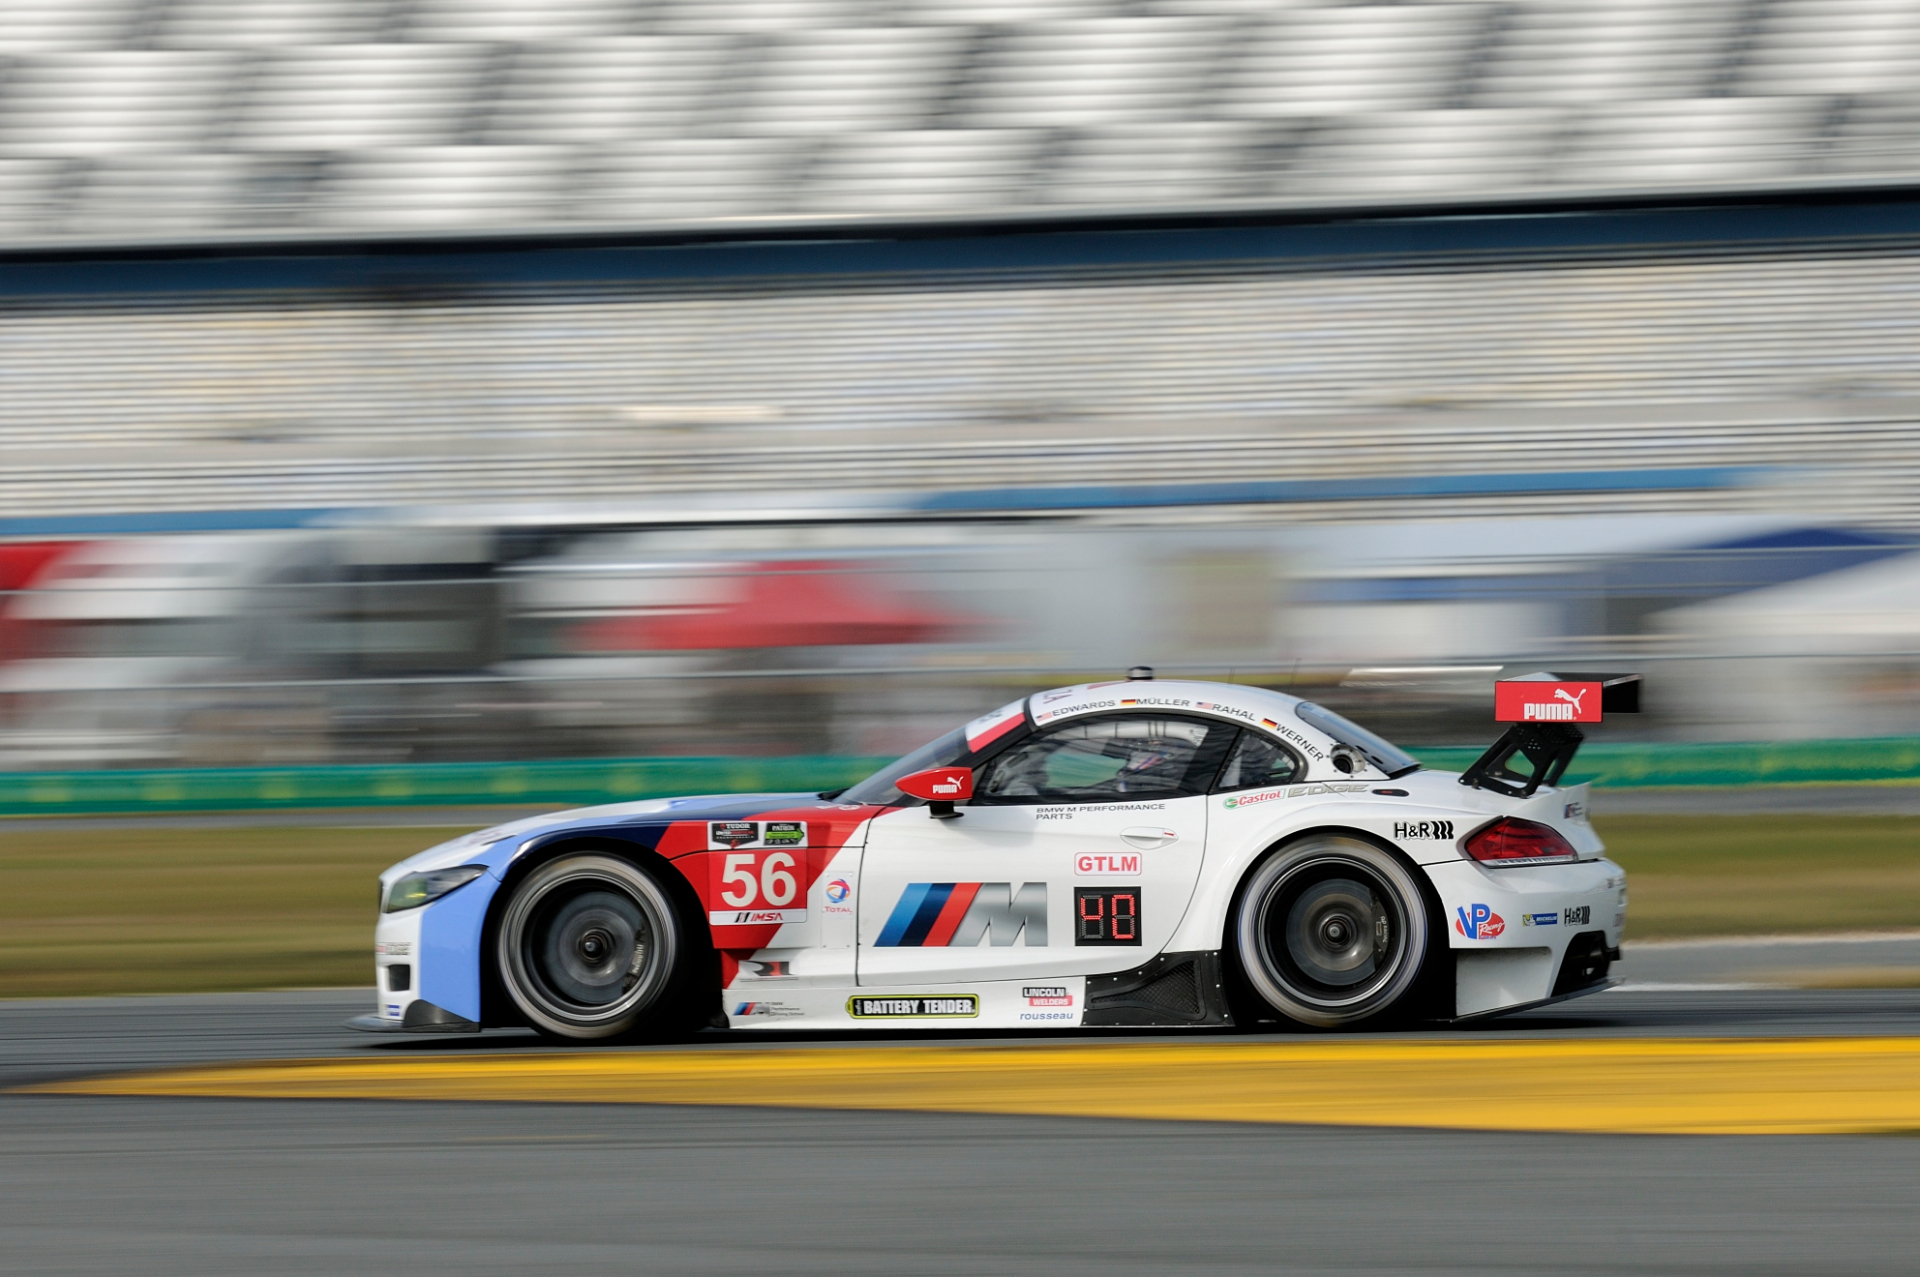 Bmw Team Rll Qualifies 7th And 8th For 24h Daytona Race Autoevolution